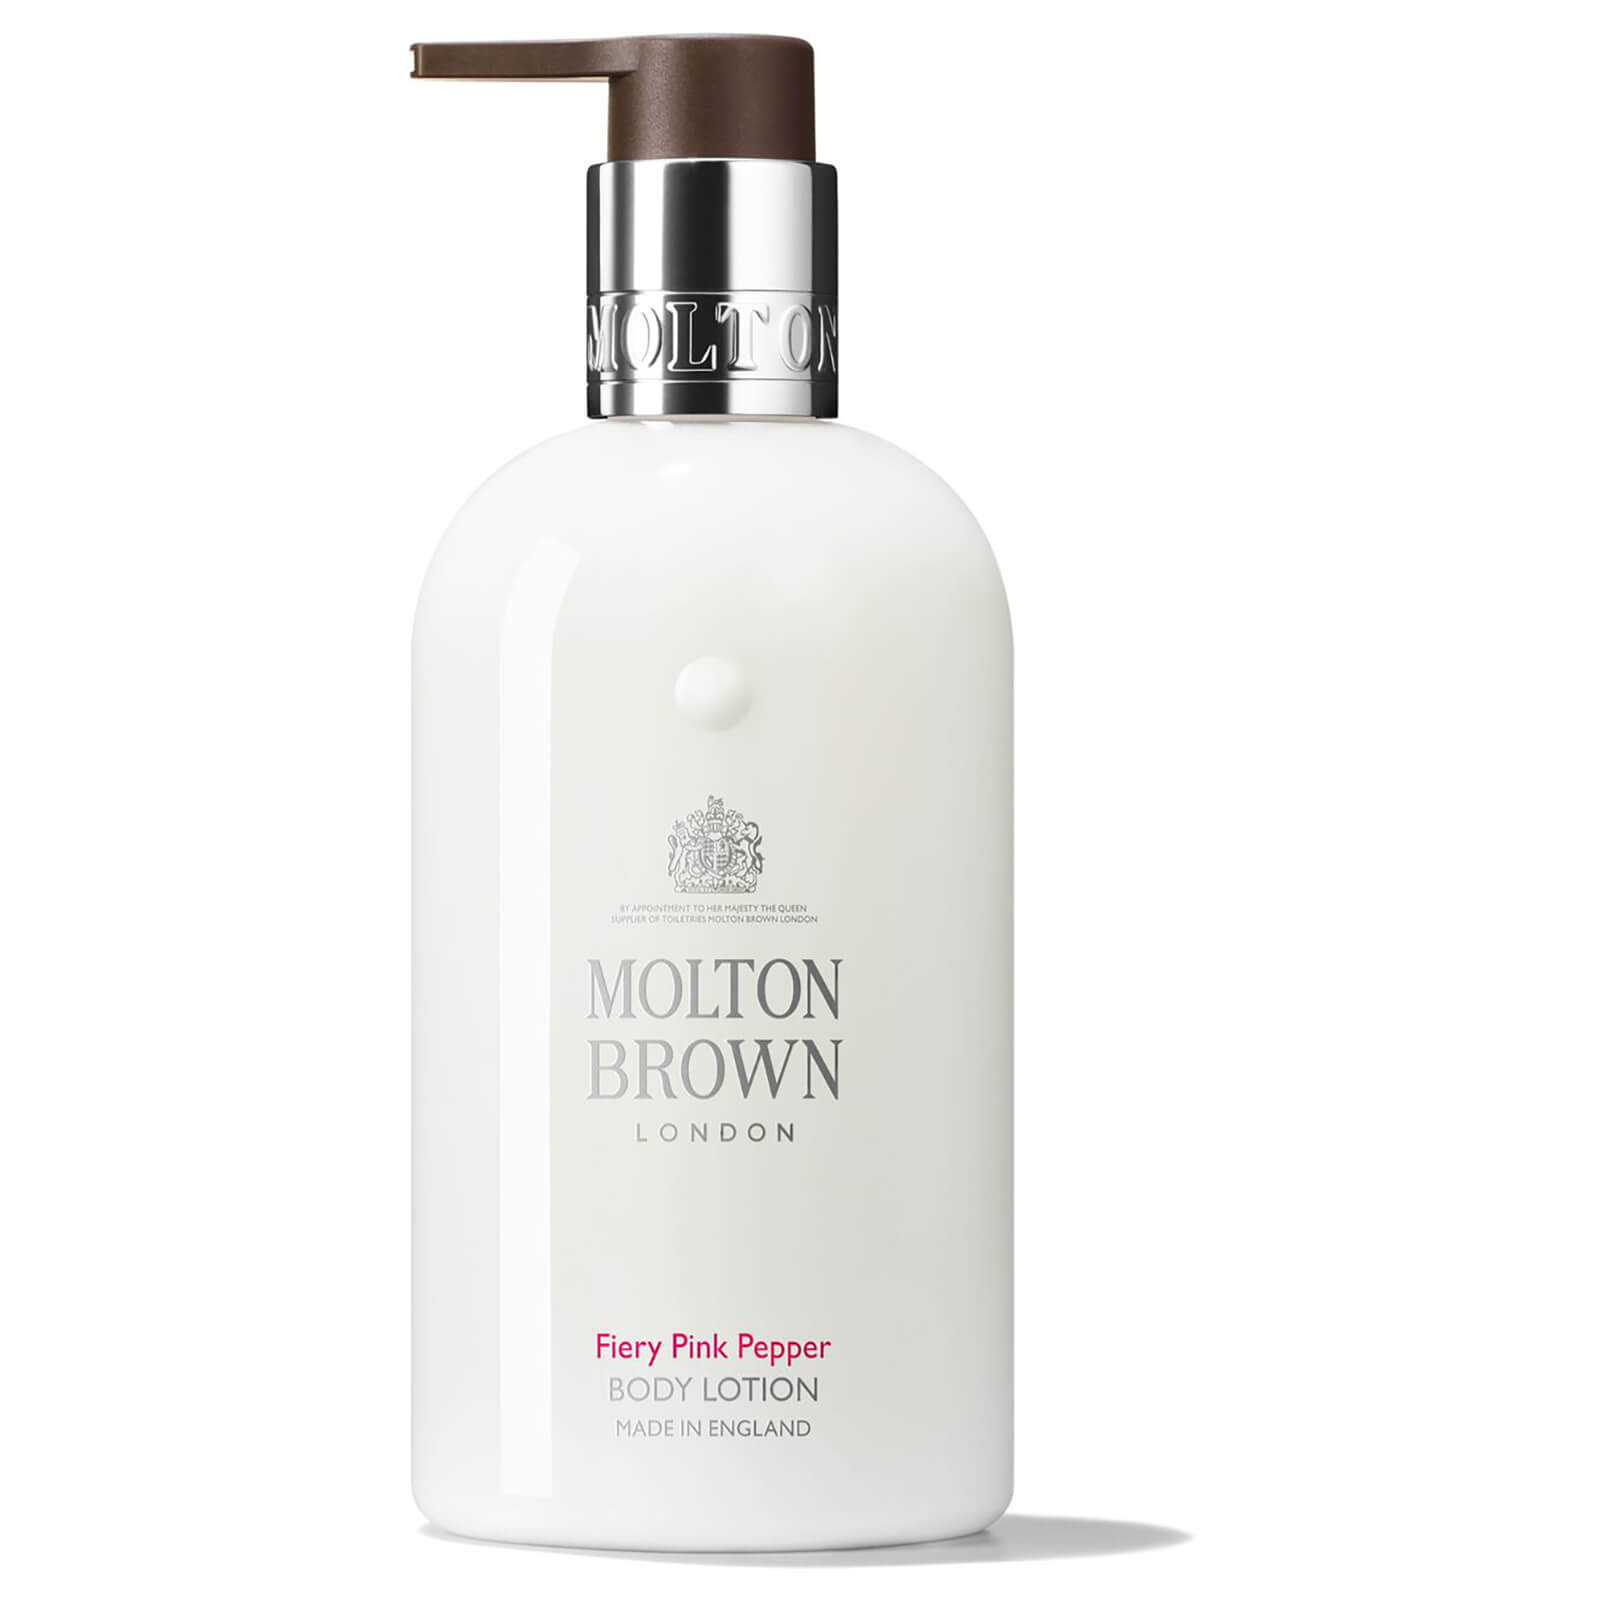 59c897f8d238 Molton Brown Pink Pepperpod Body Lotion 300ml